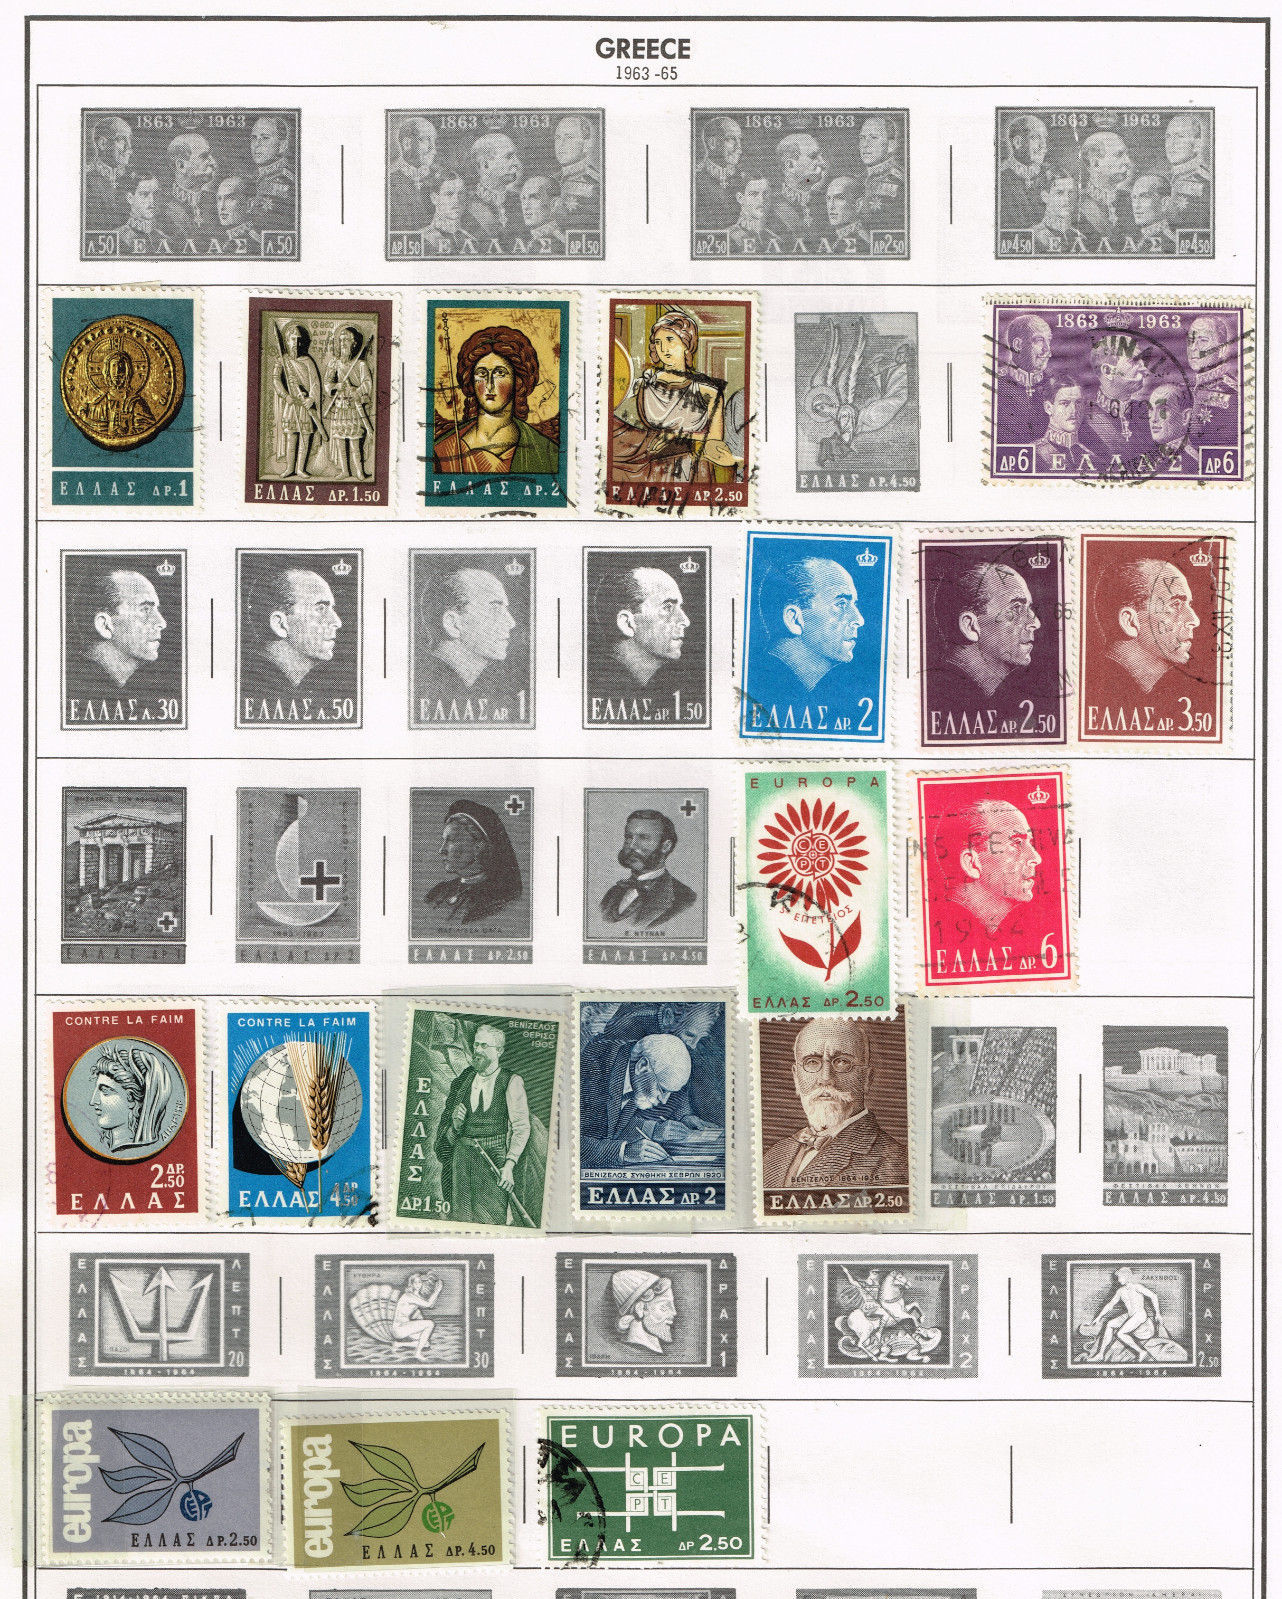 110 Greece 1961 - 1971 stamps image 2